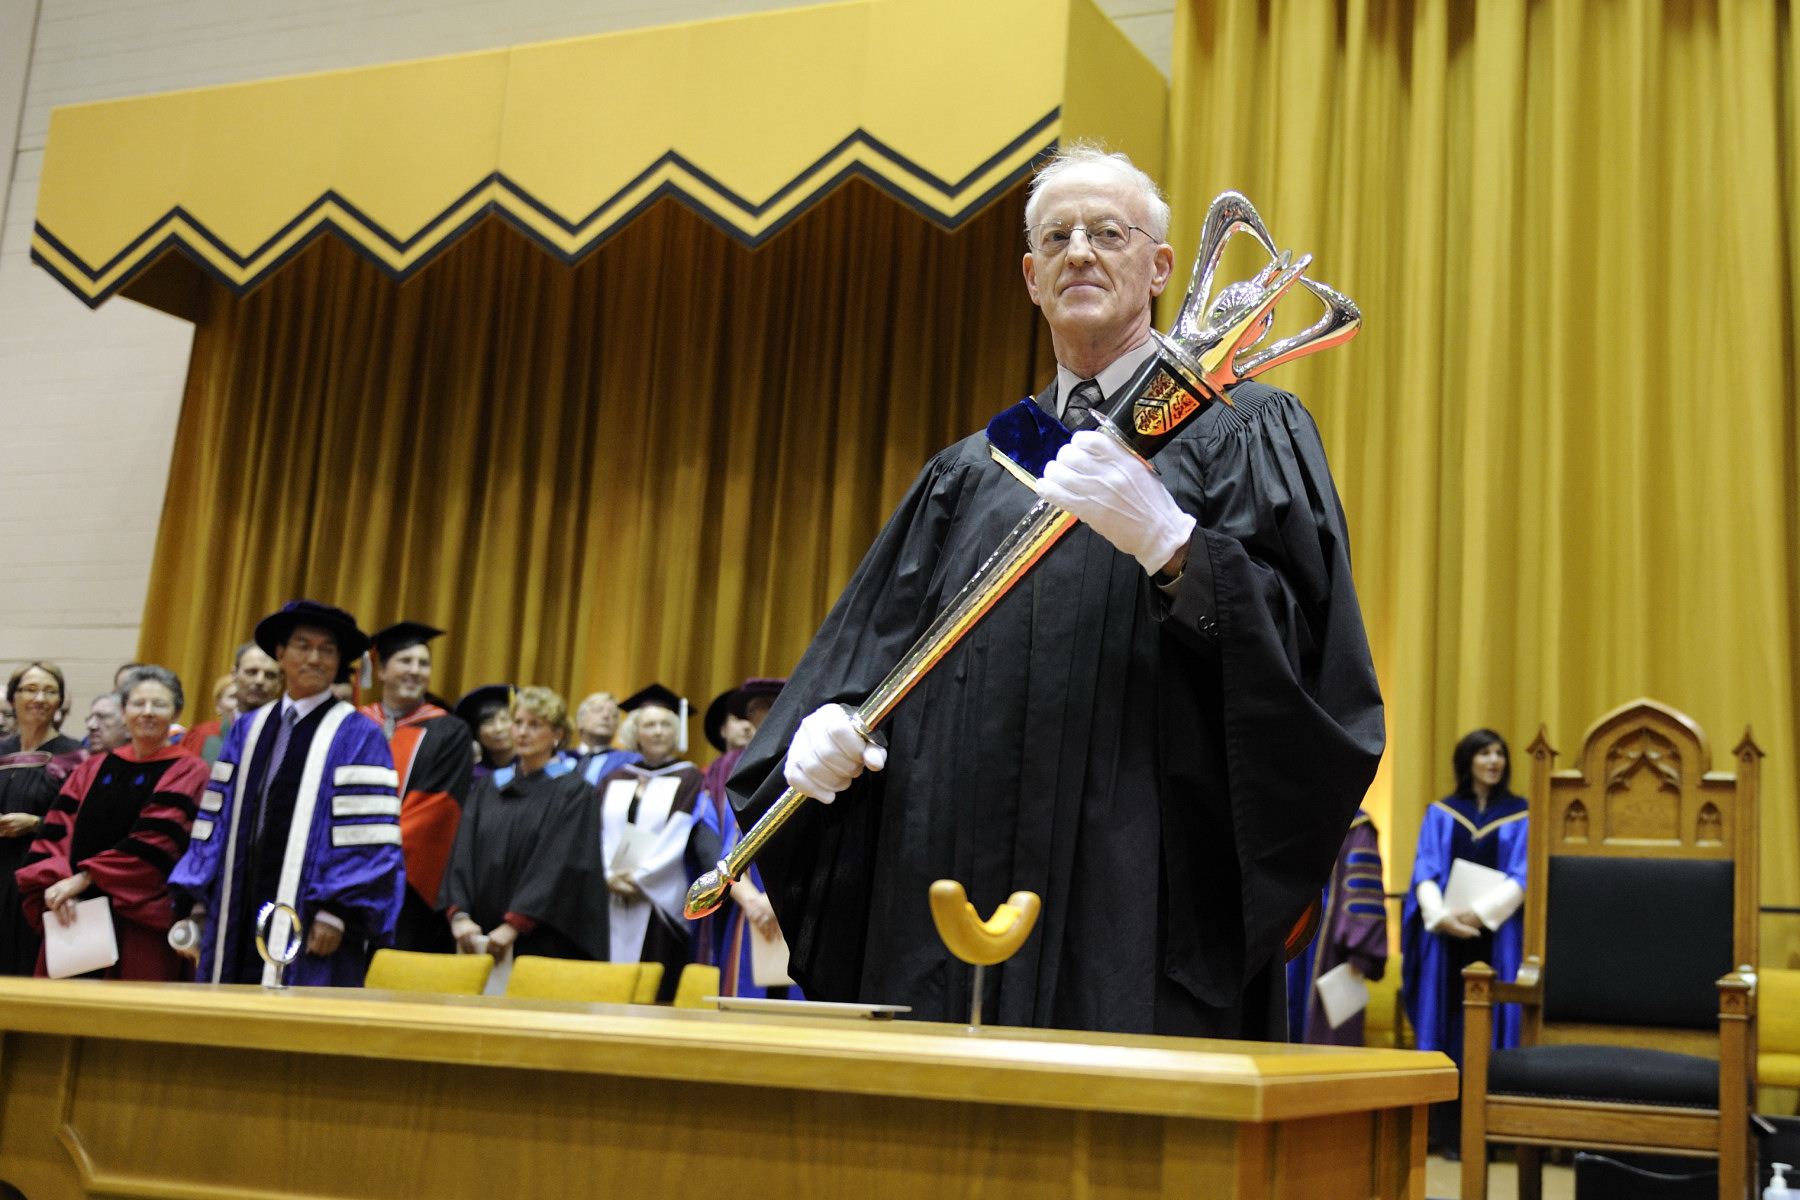 During a convocation ceremony at the University of Waterloo, in Ontario, His Excellency the Right Honourable David Johnston, Governor General of Canada, received a Doctorate of Law honoris causa from the University, and was invested as president emeritus. The University Mace Bearer marks the beginning of the ceremony.